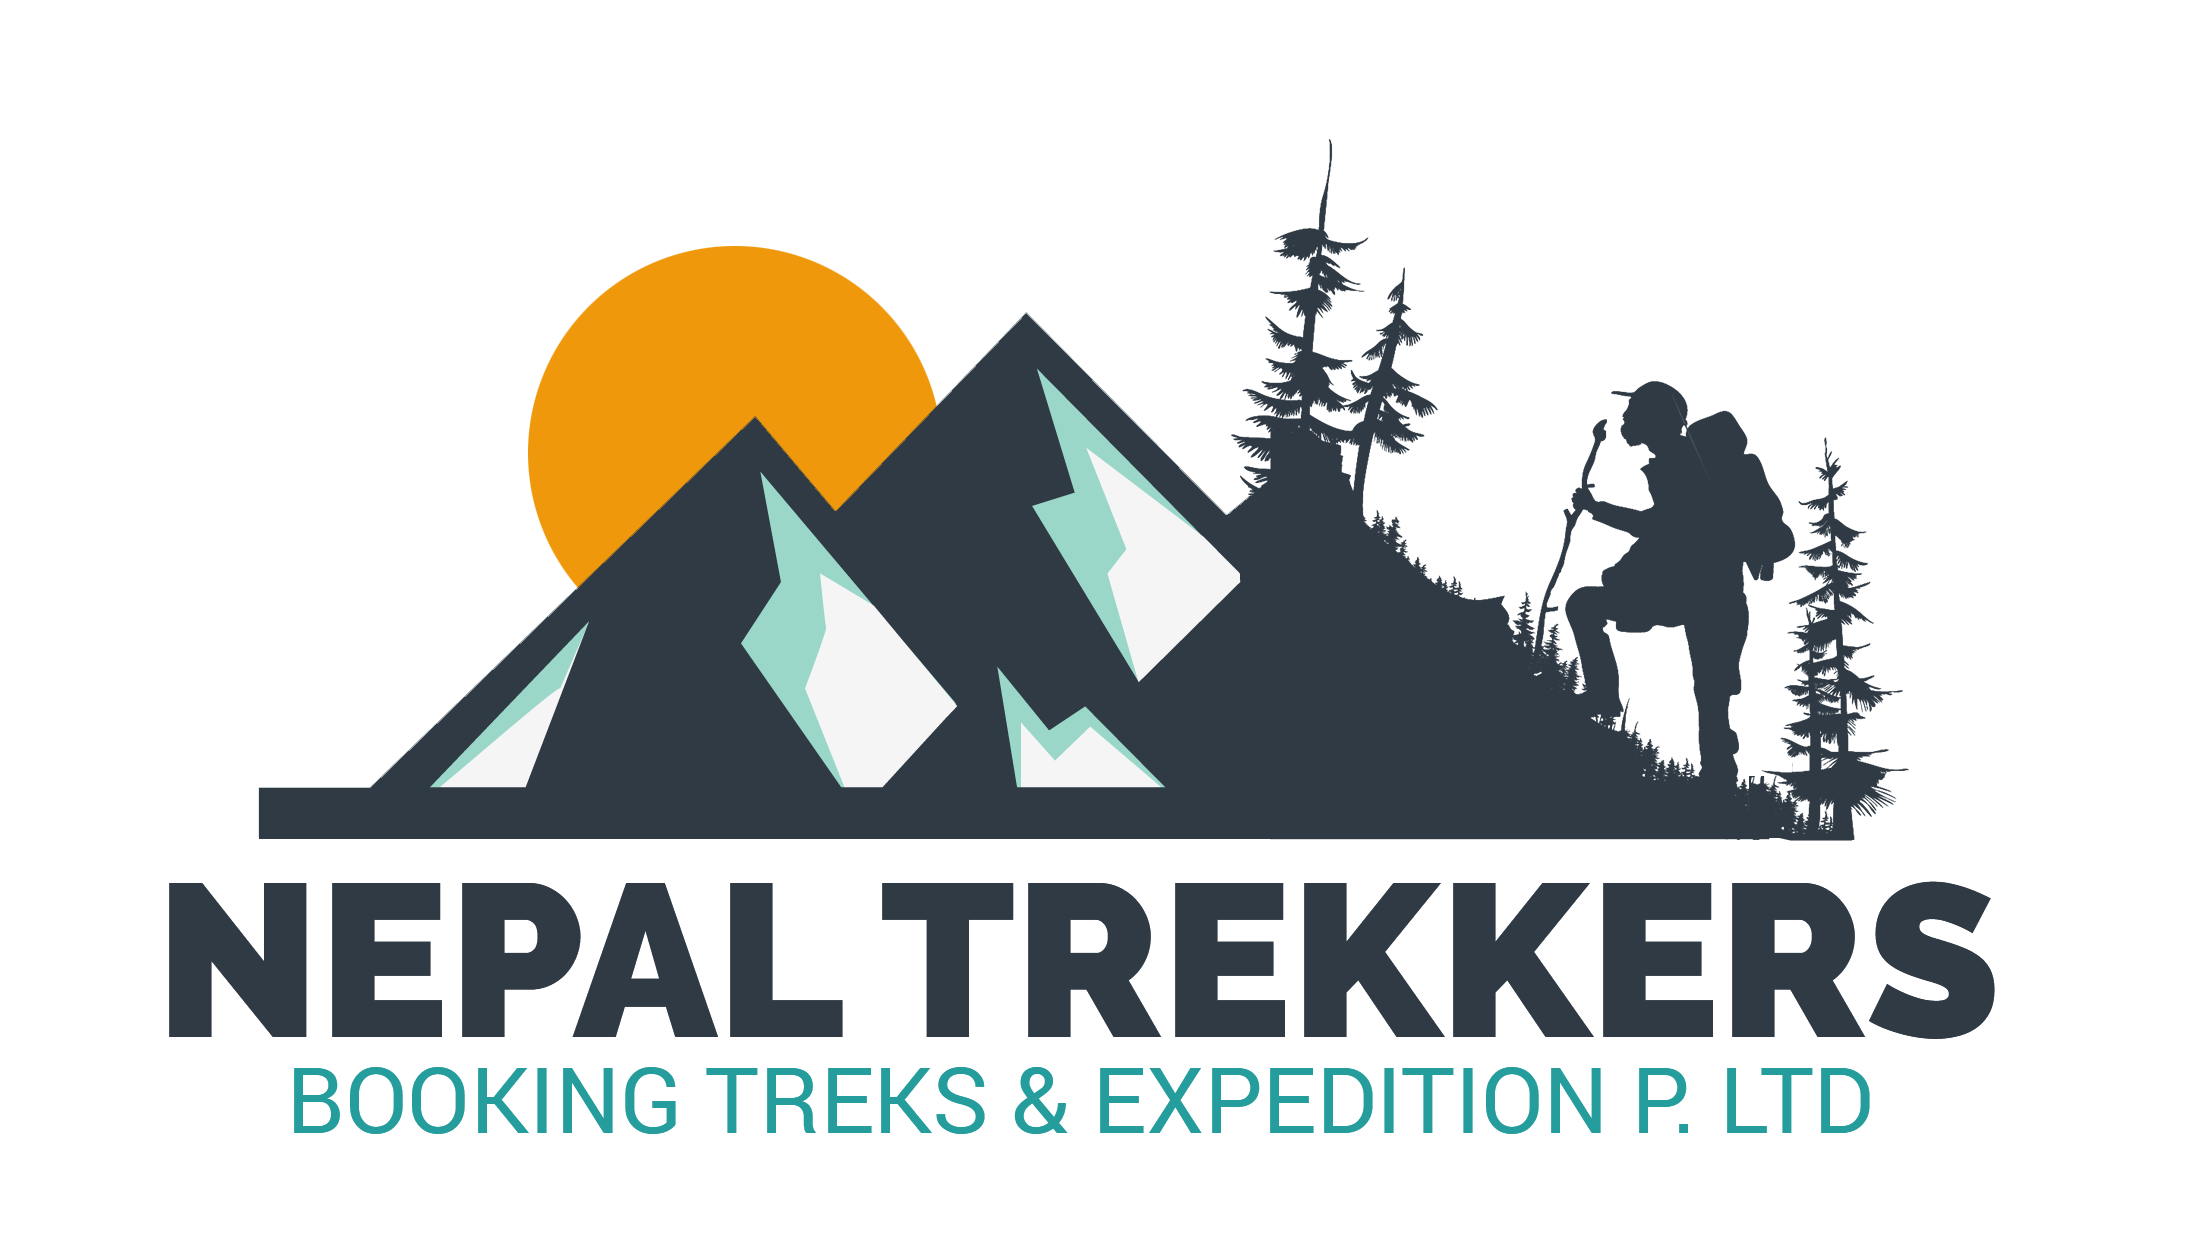 Nepal Trekkers Booking Treks and Expedition Pvt.Ltd